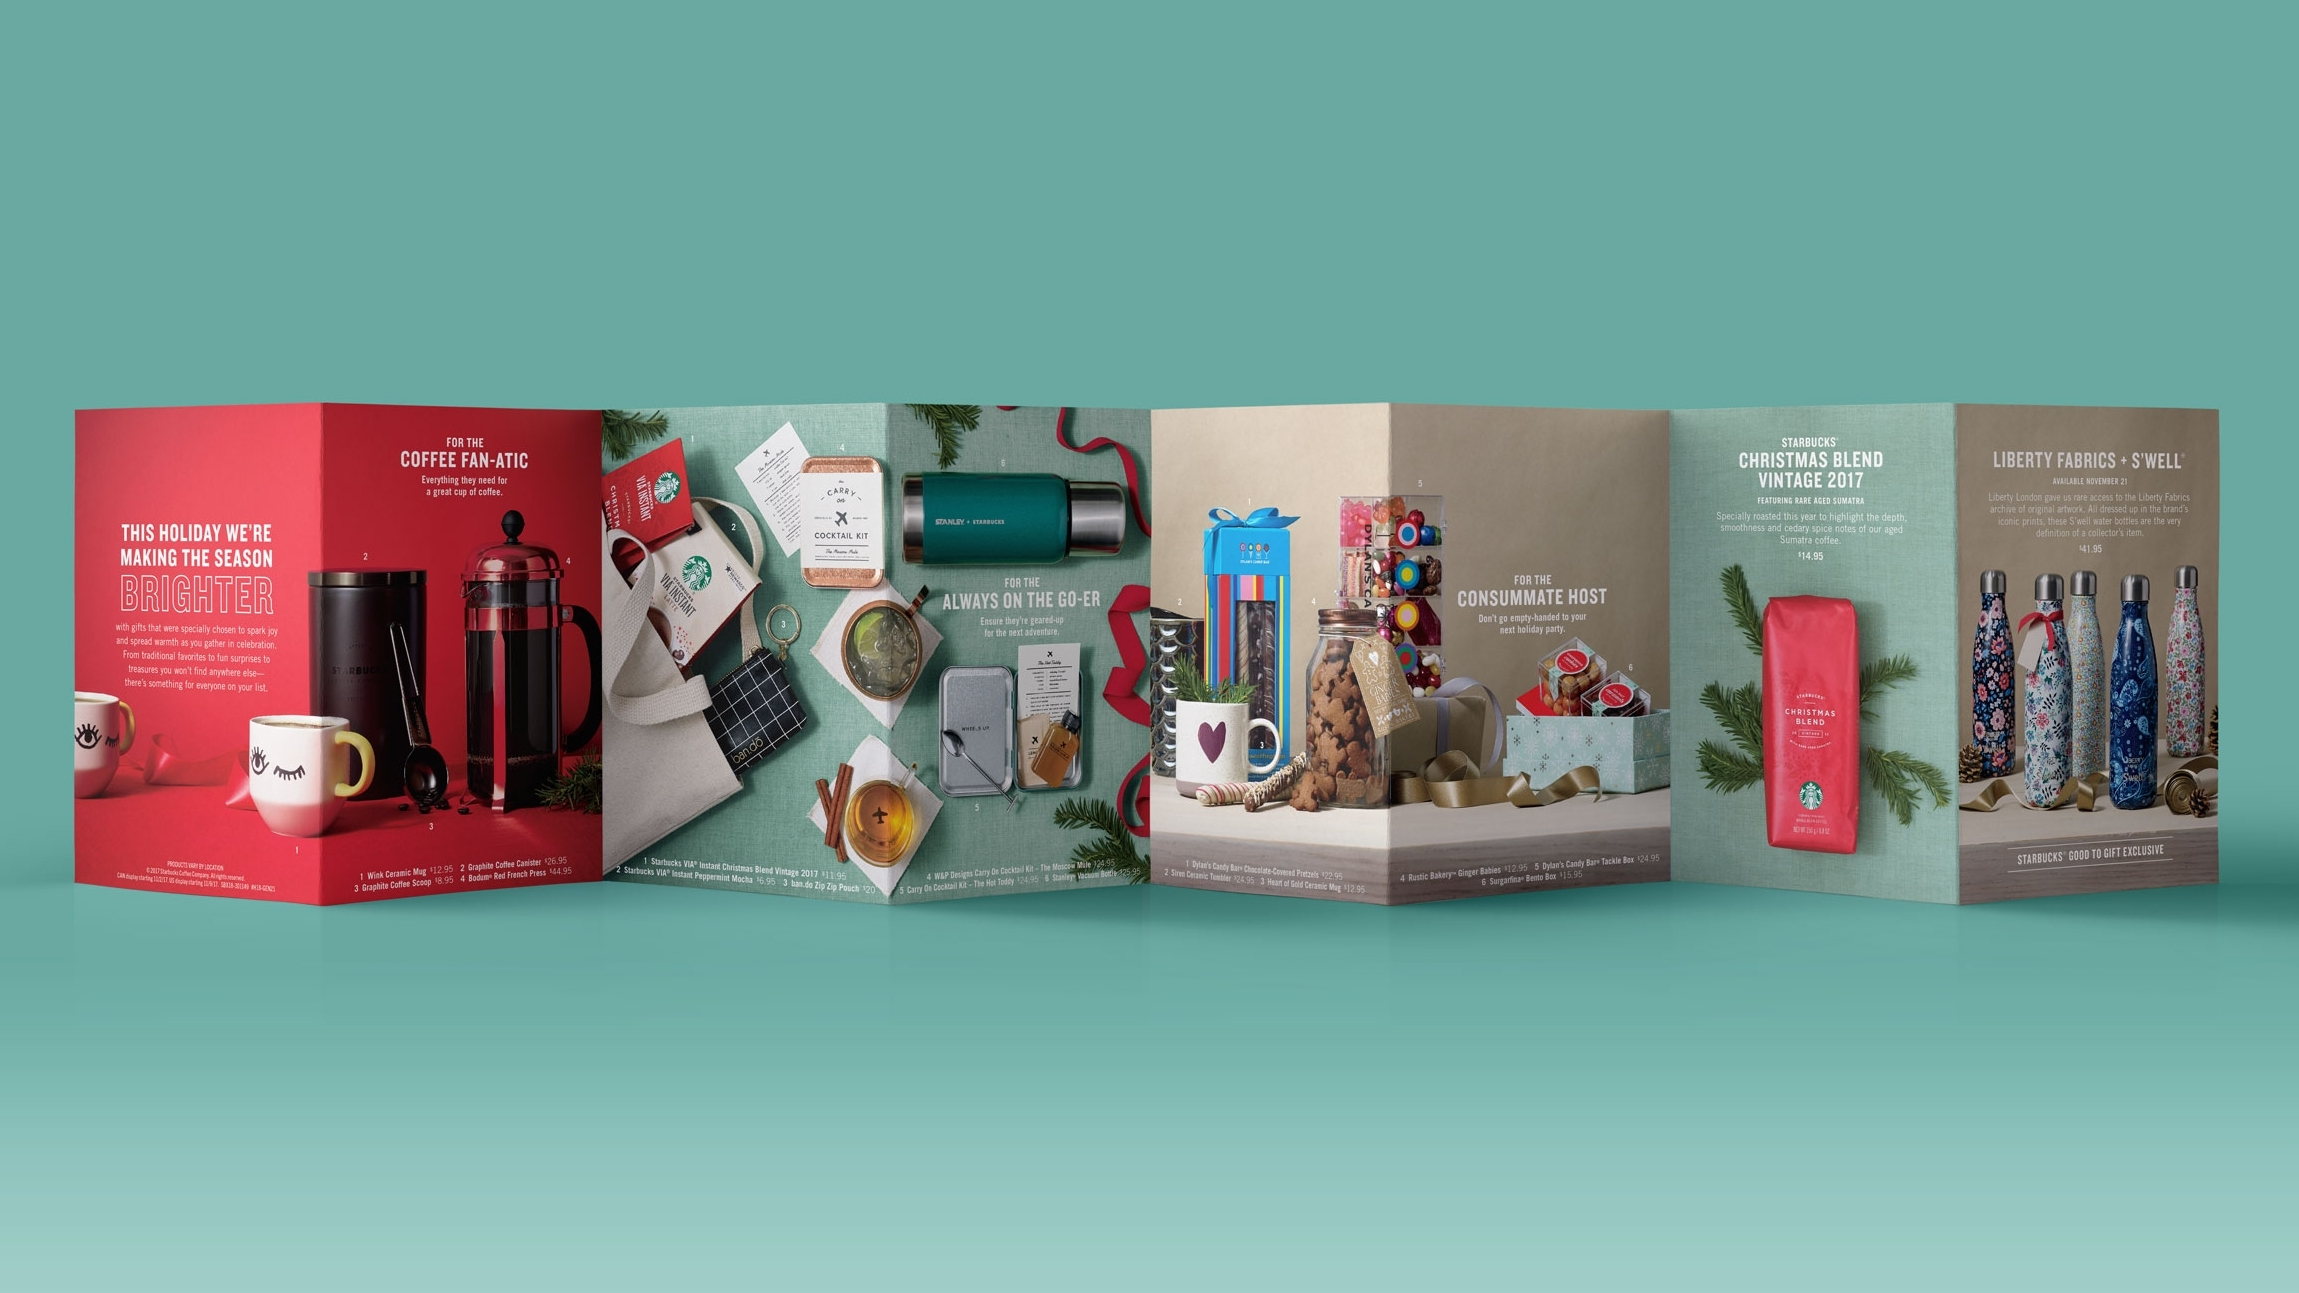 Christmas Gift Guide Layout.Starbucks Holiday Gift Guide Michael Lortz